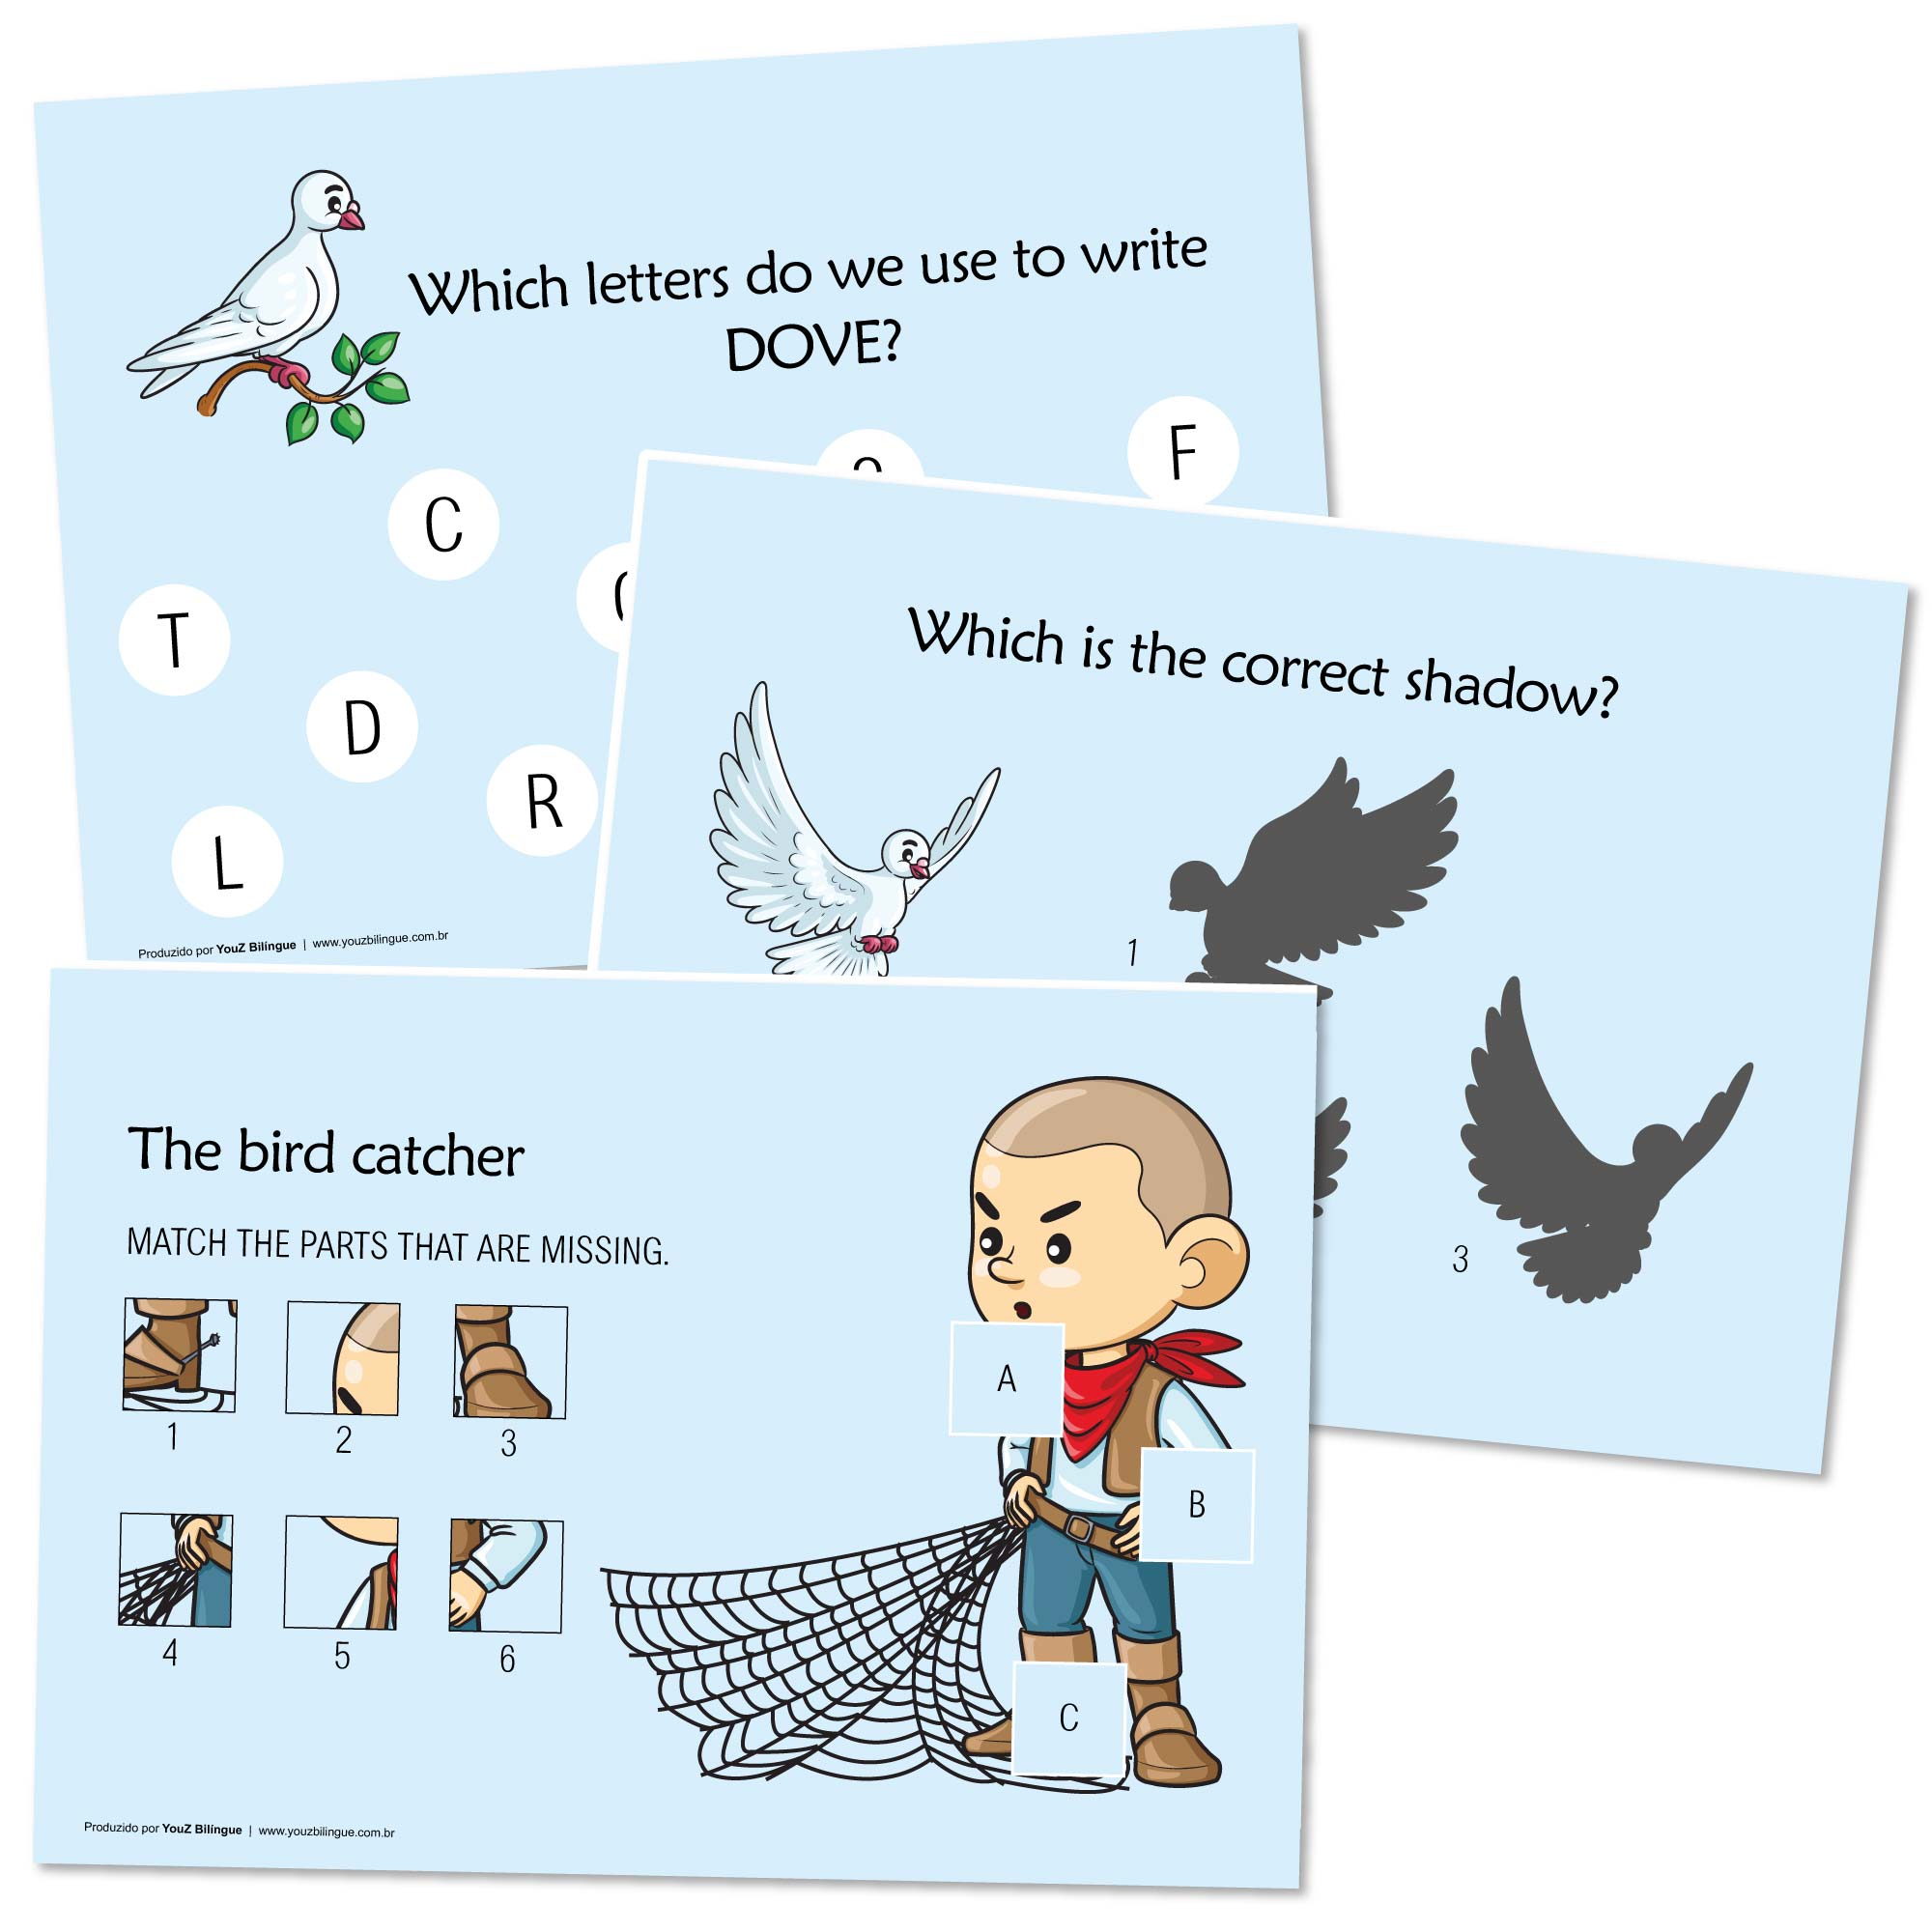 The Ant and the Dove - Storytelling activities